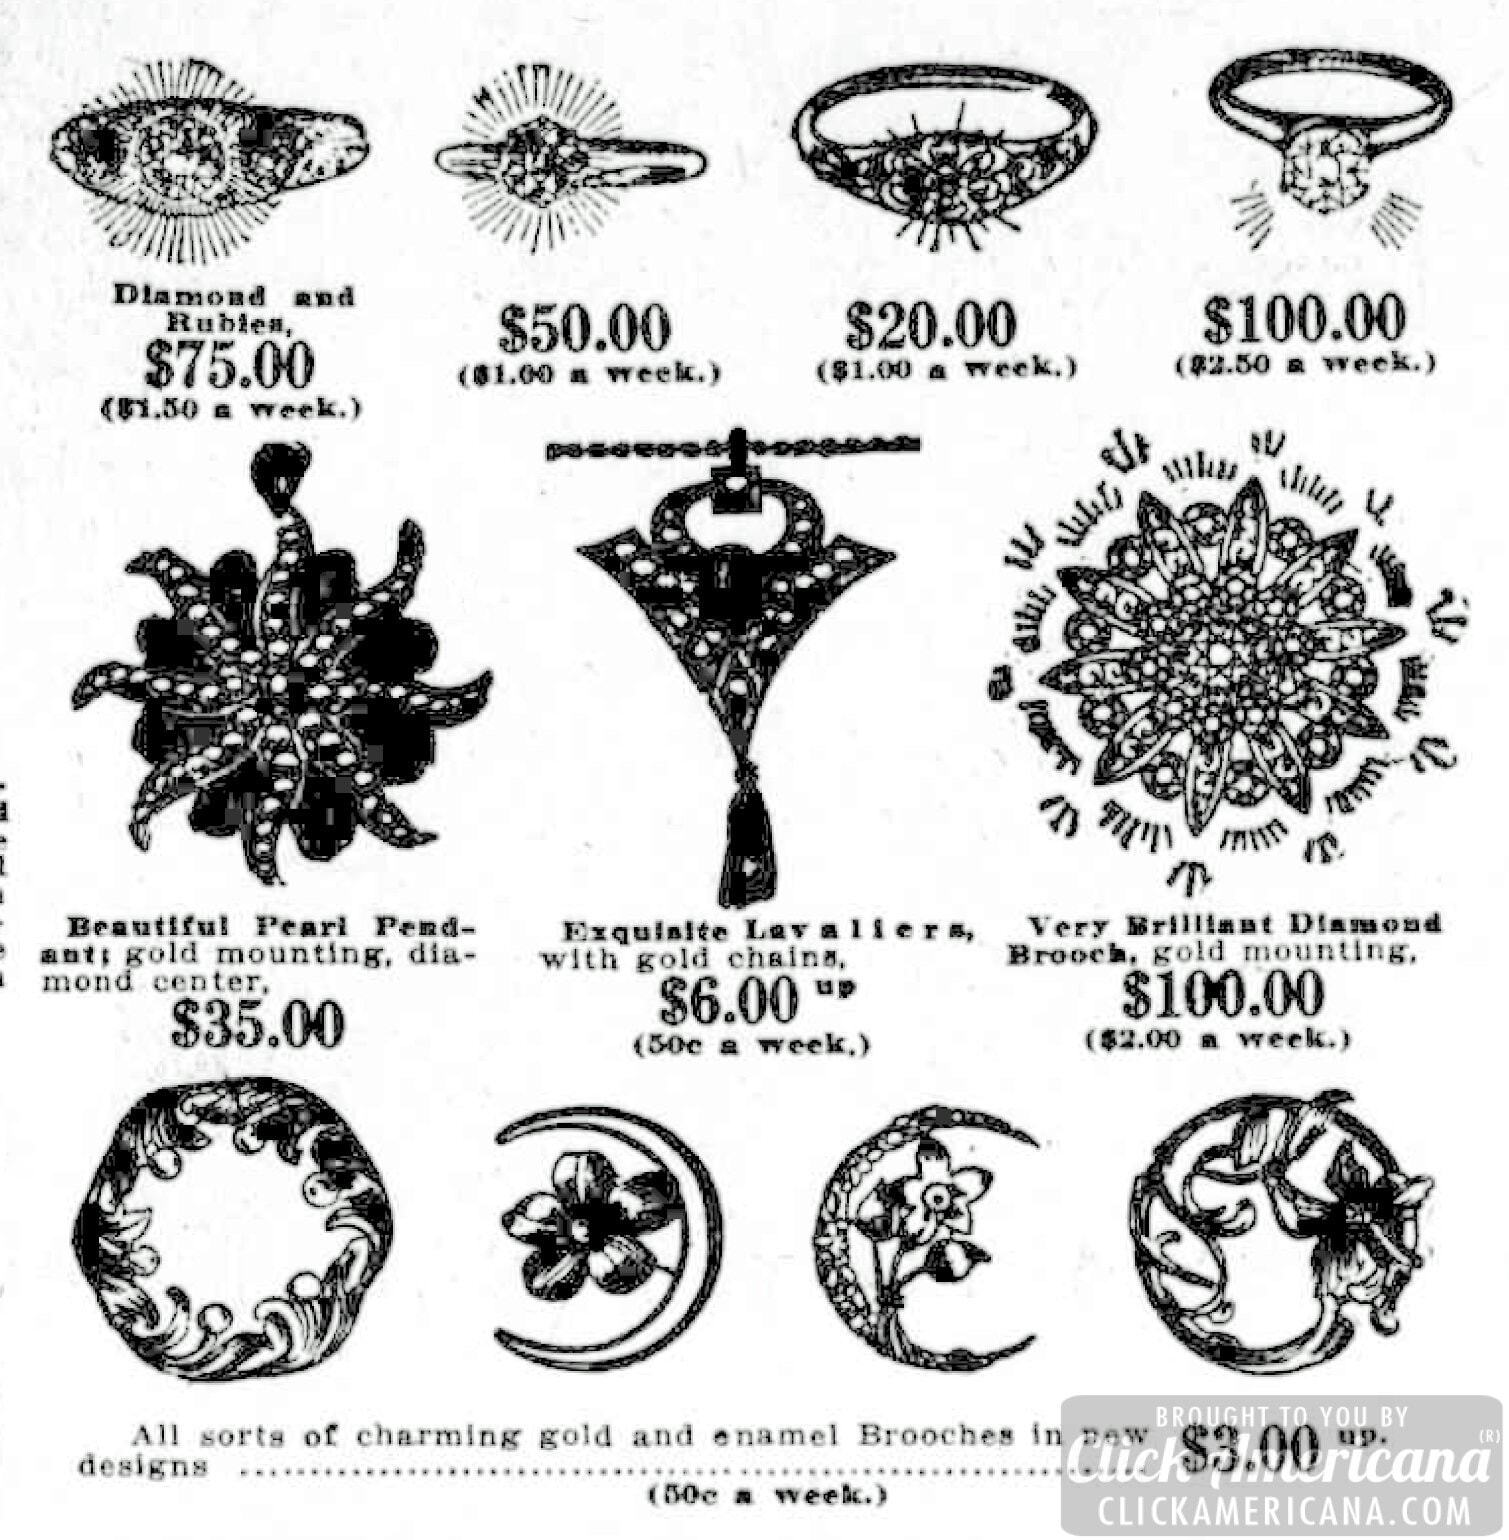 Antique jewelry designs: Rings, pendants, brooches (1911)